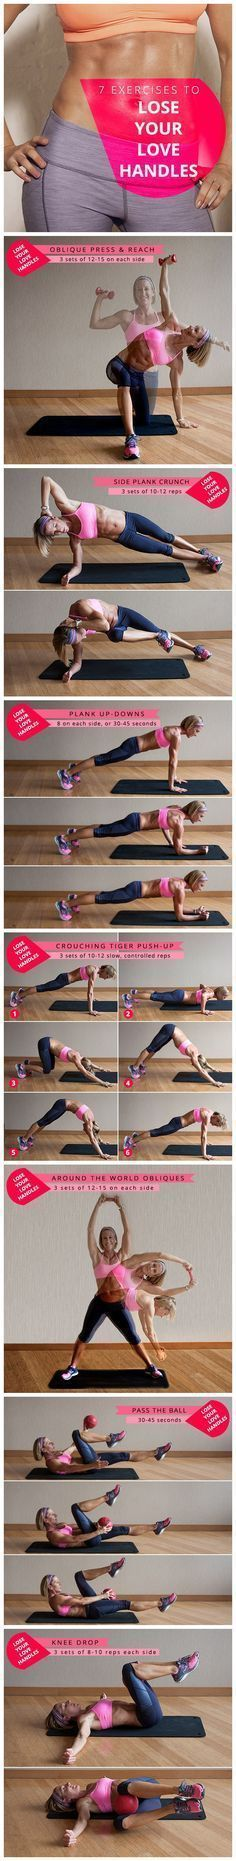 Love Handles Workout | Fitness